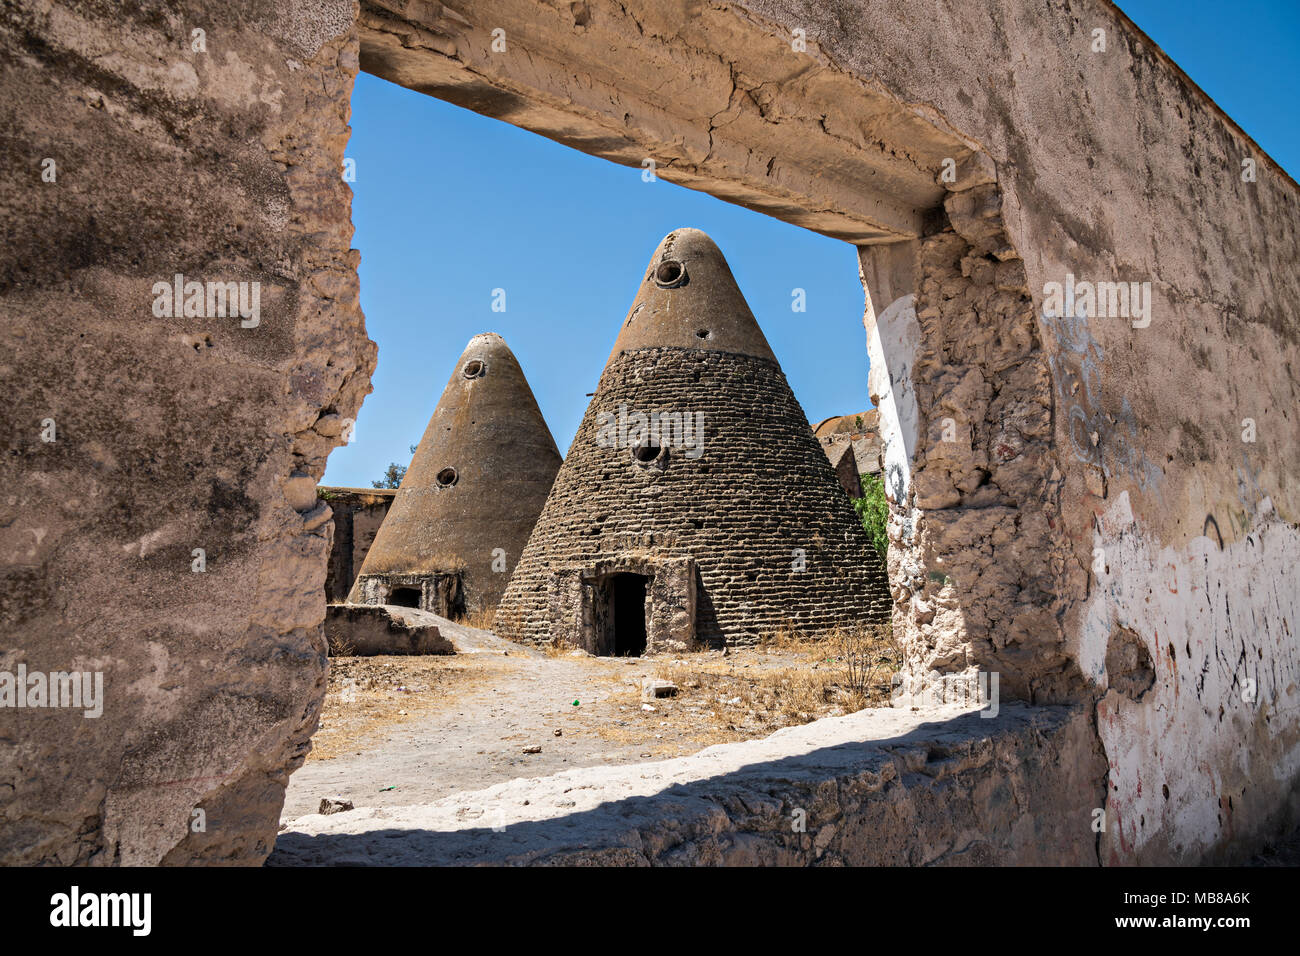 The pyramid shaped granaries of the Hacienda de Jaral de Berrio in Jaral de Berrios, Guanajuato, Mexico. The abandoned Jaral de Berrio hacienda was once the largest in Mexico and housed over 6,000 people on the property and is credited with creating Mescal. - Stock Image